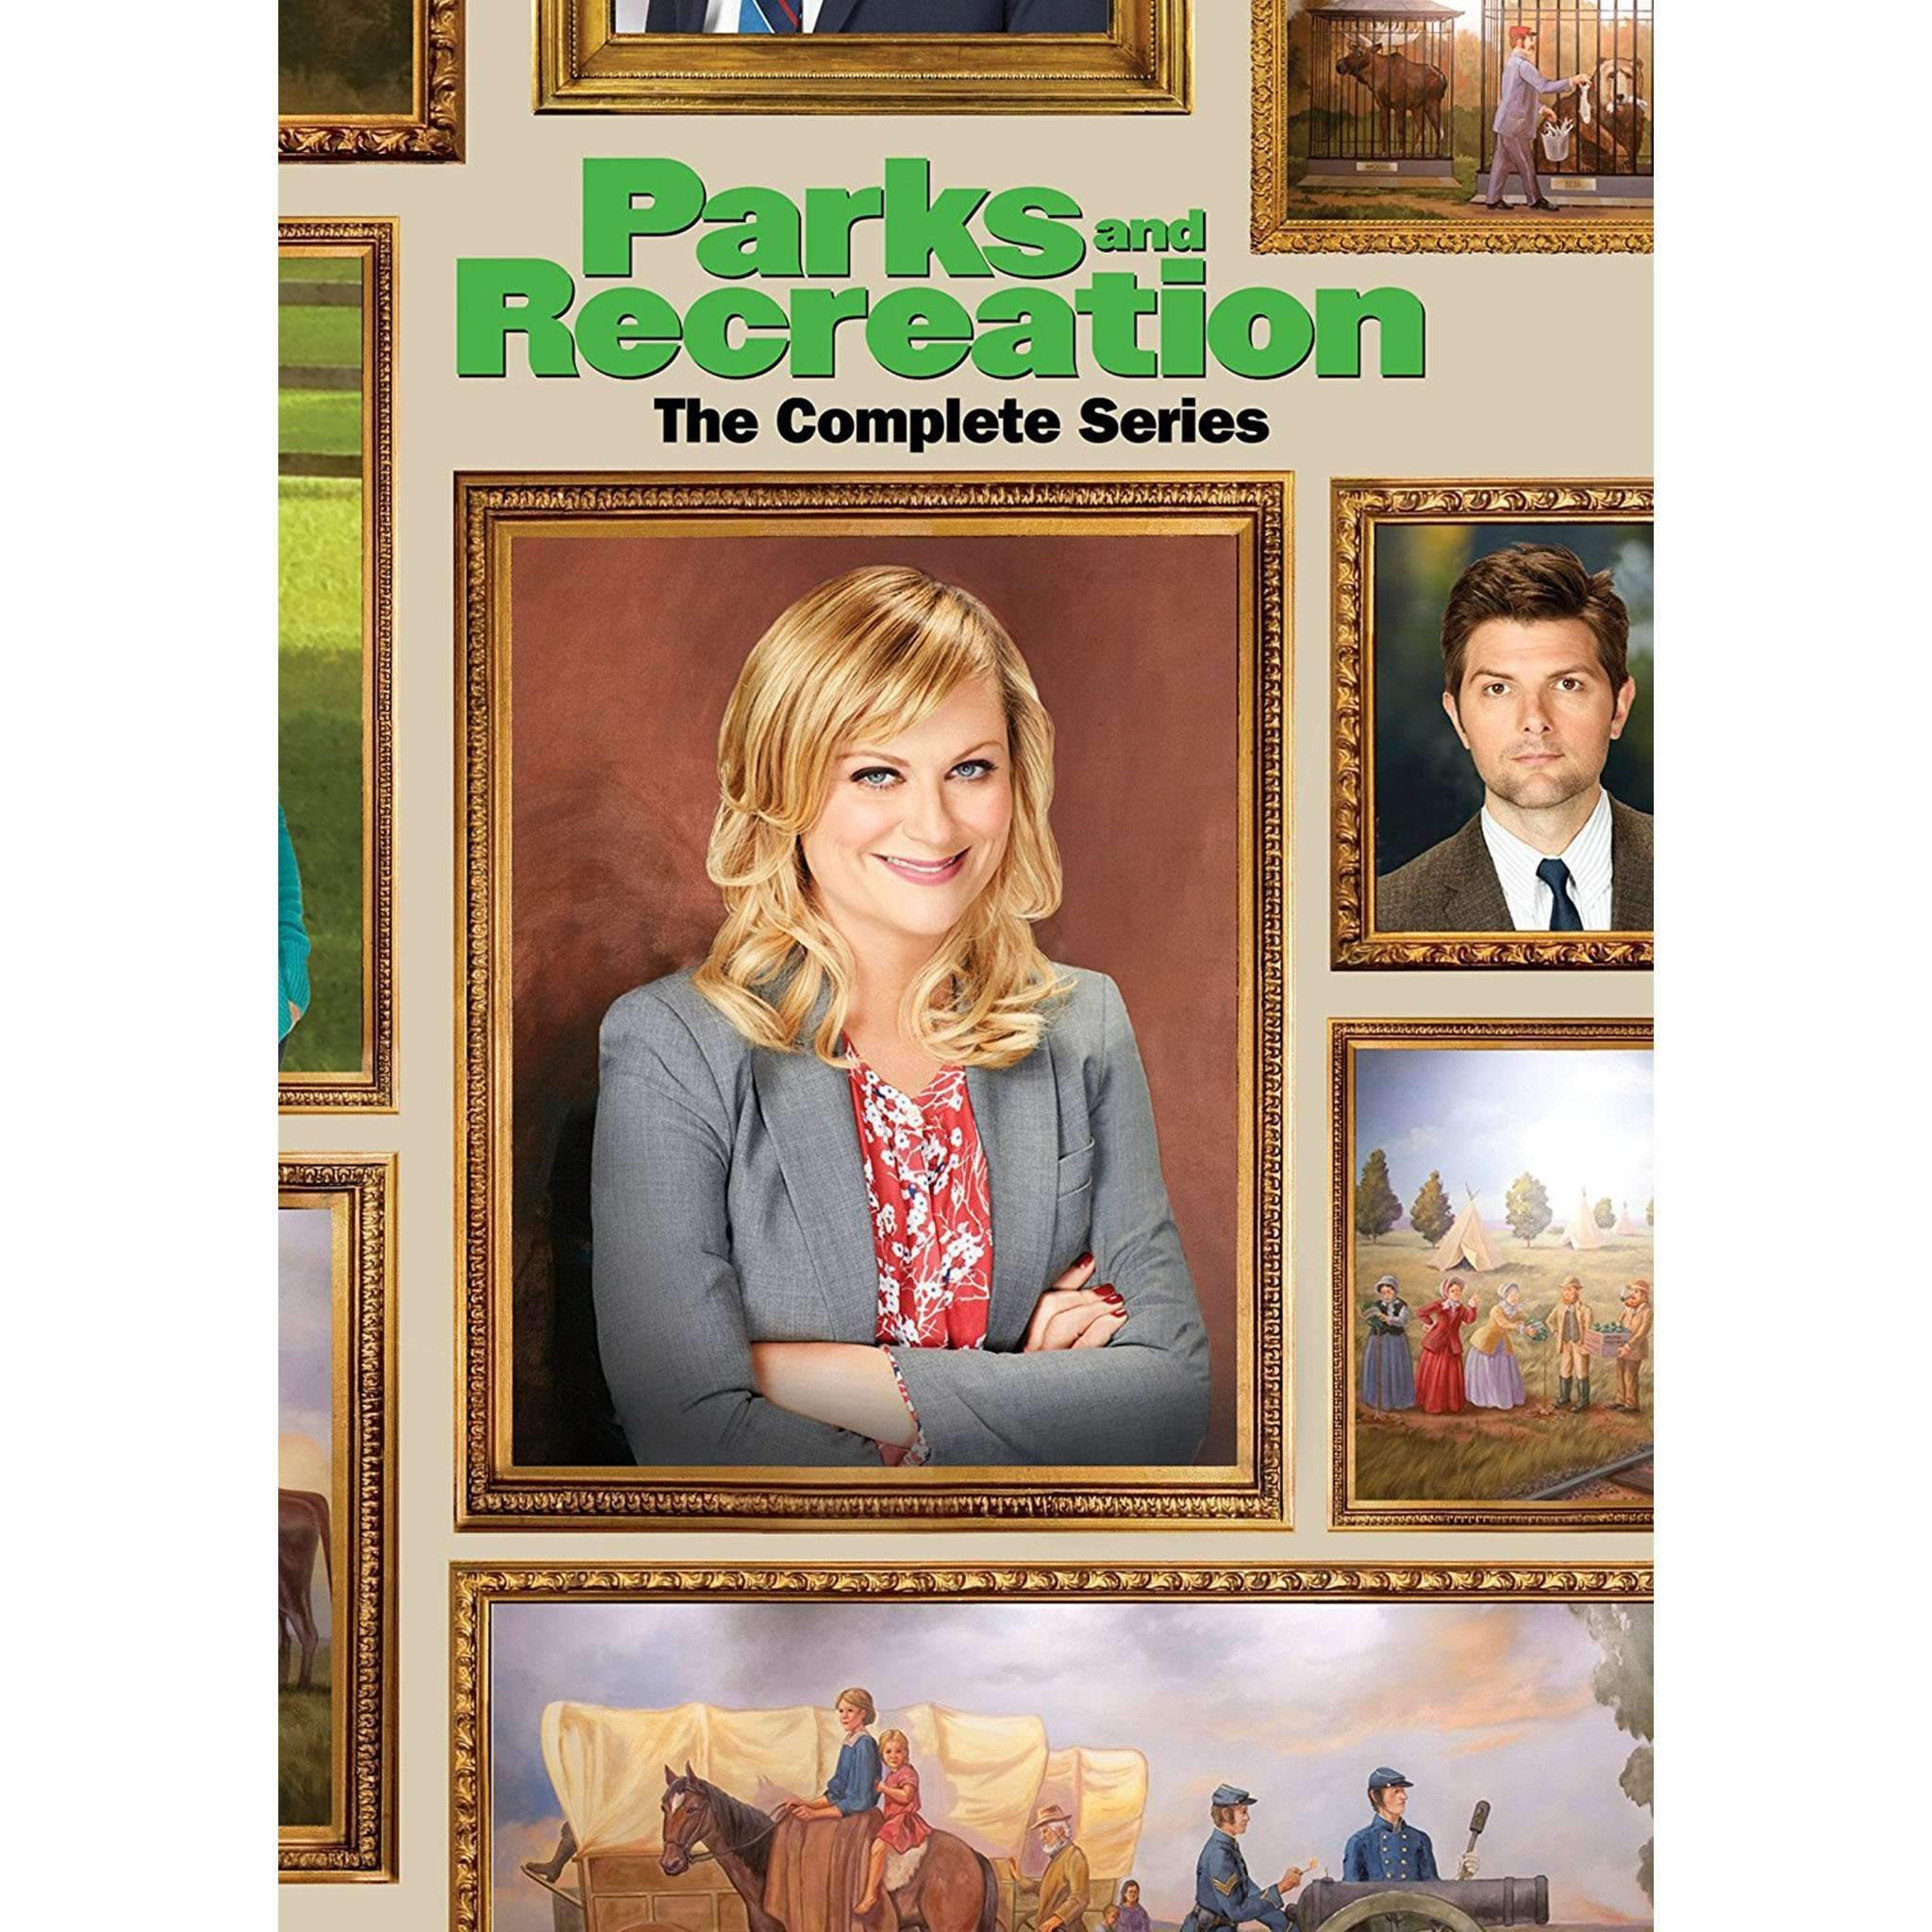 Parks and Recreation DVD Complete Series Box Set Universal Studios DVDs & Blu-ray Discs > DVDs > Box Sets